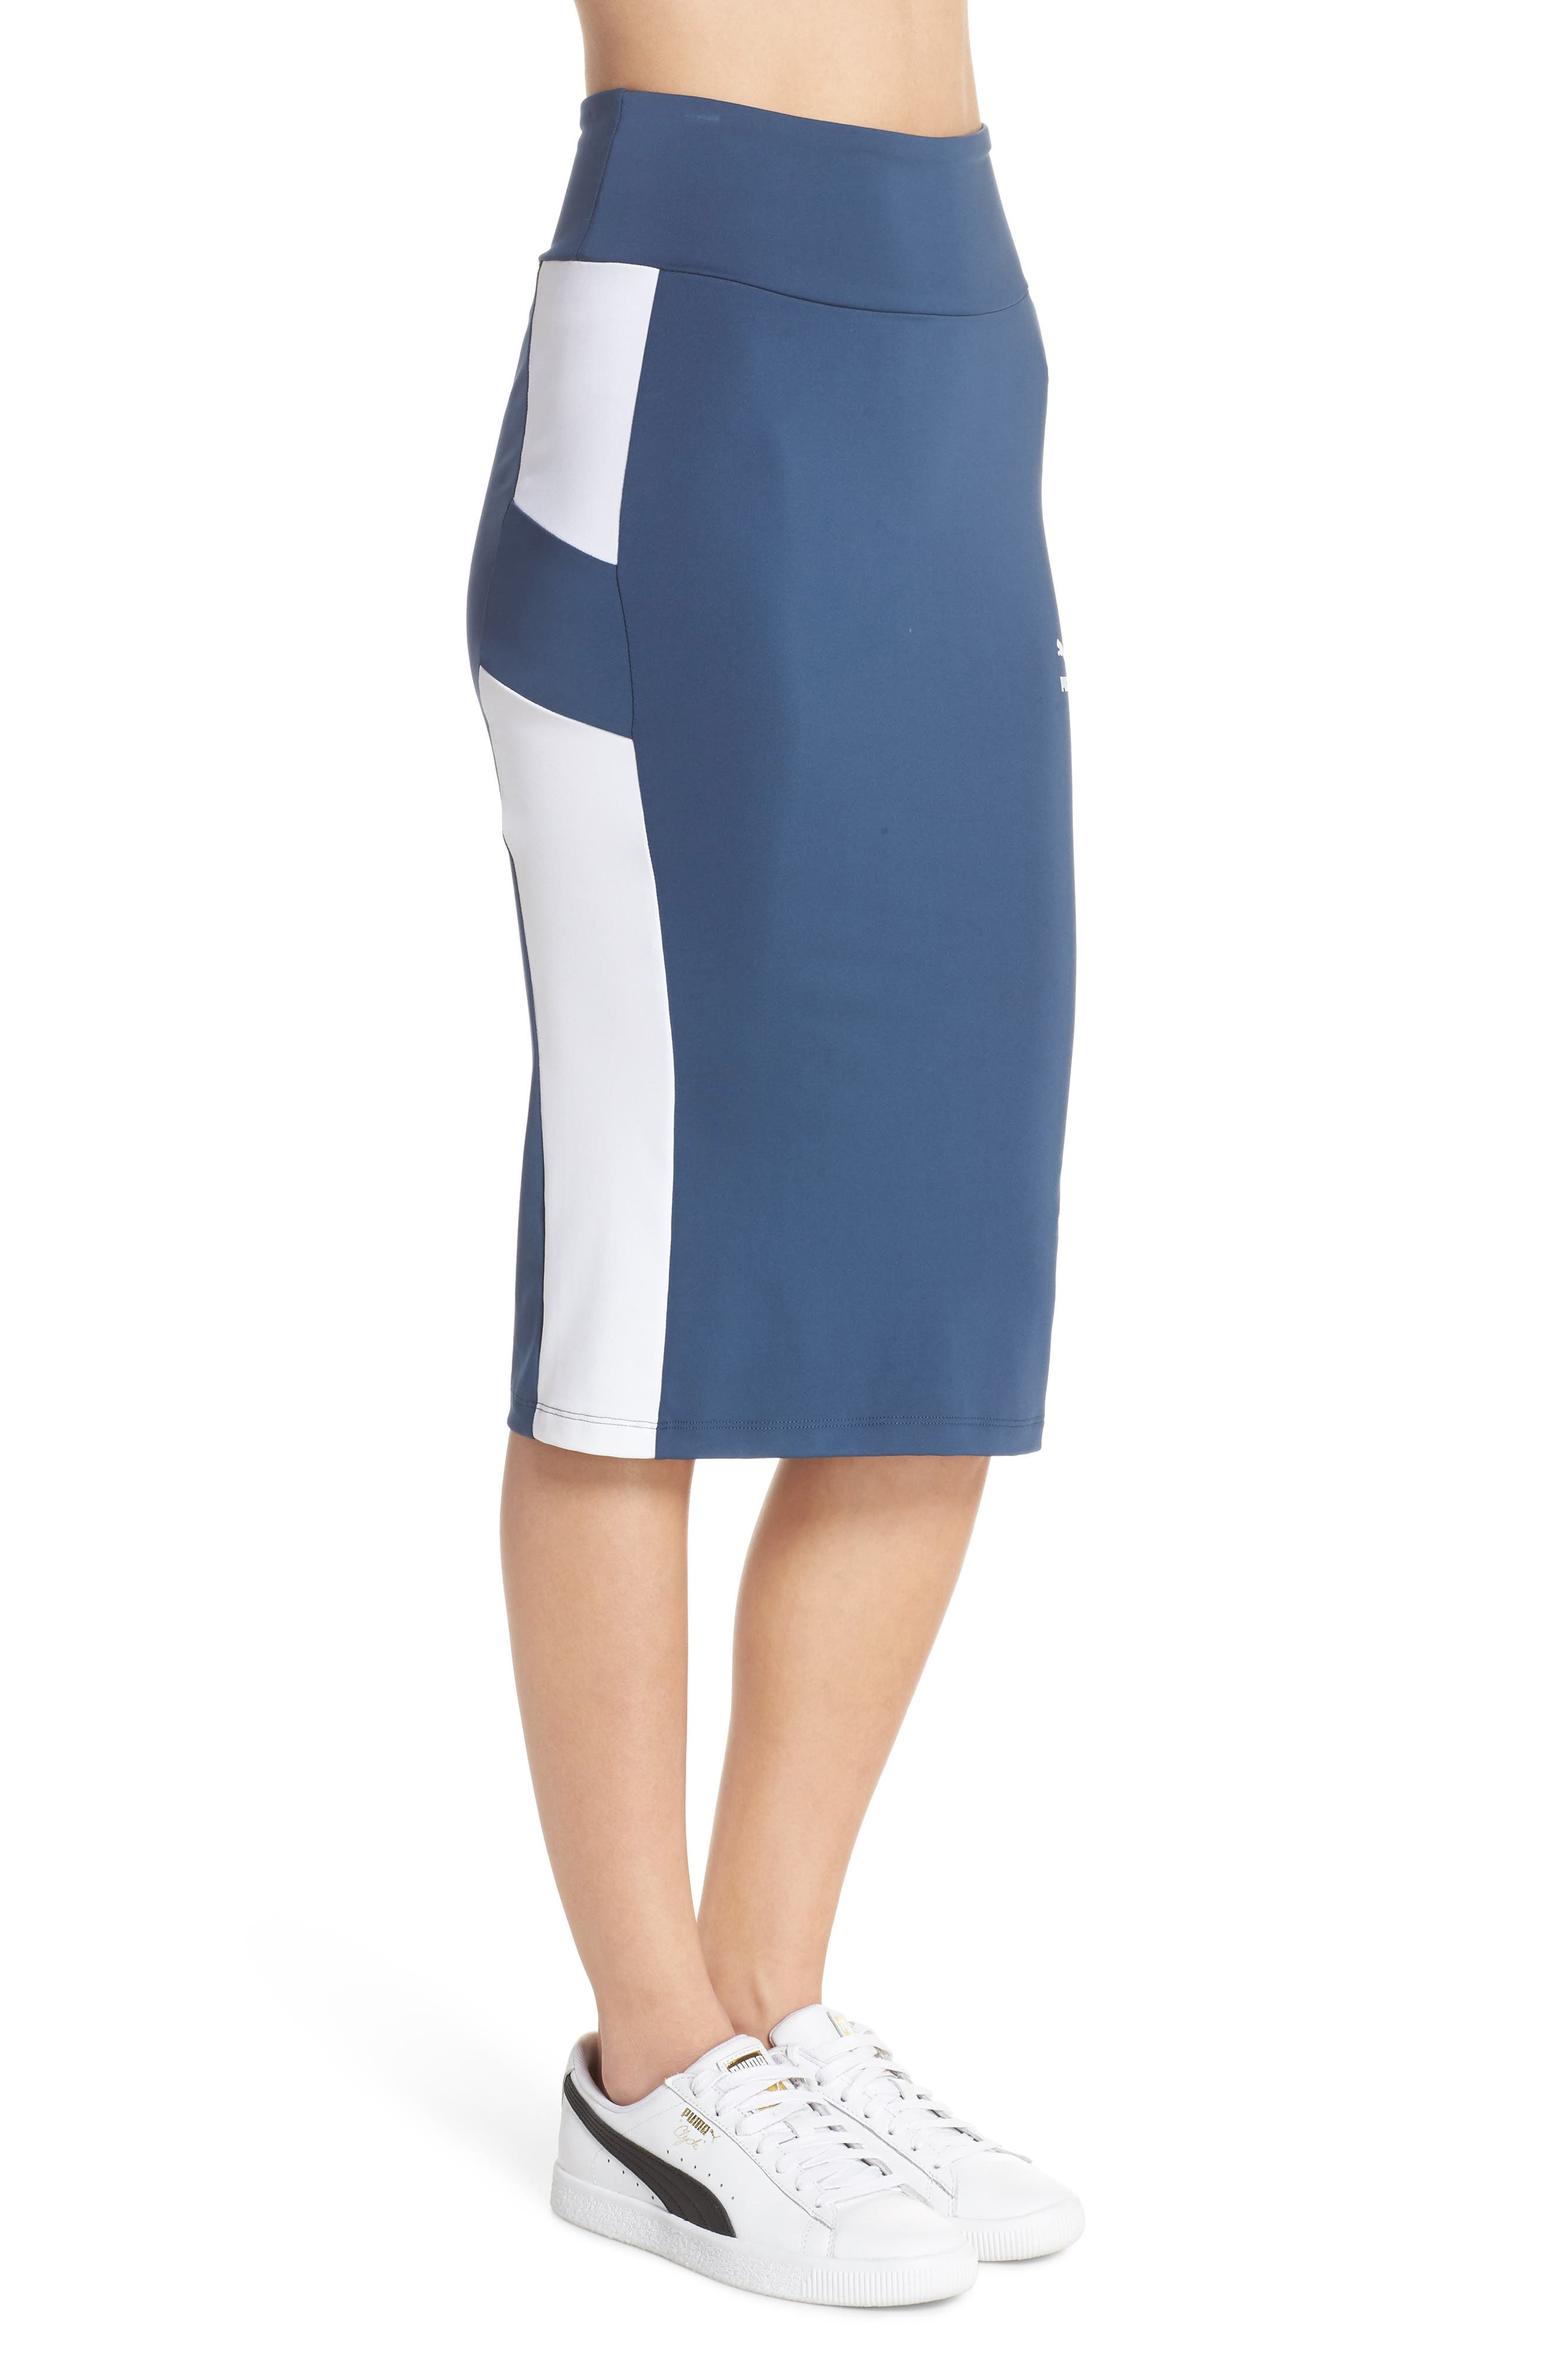 Archive Logo Pencil Skirt,                             Alternate thumbnail 3, color,                             403